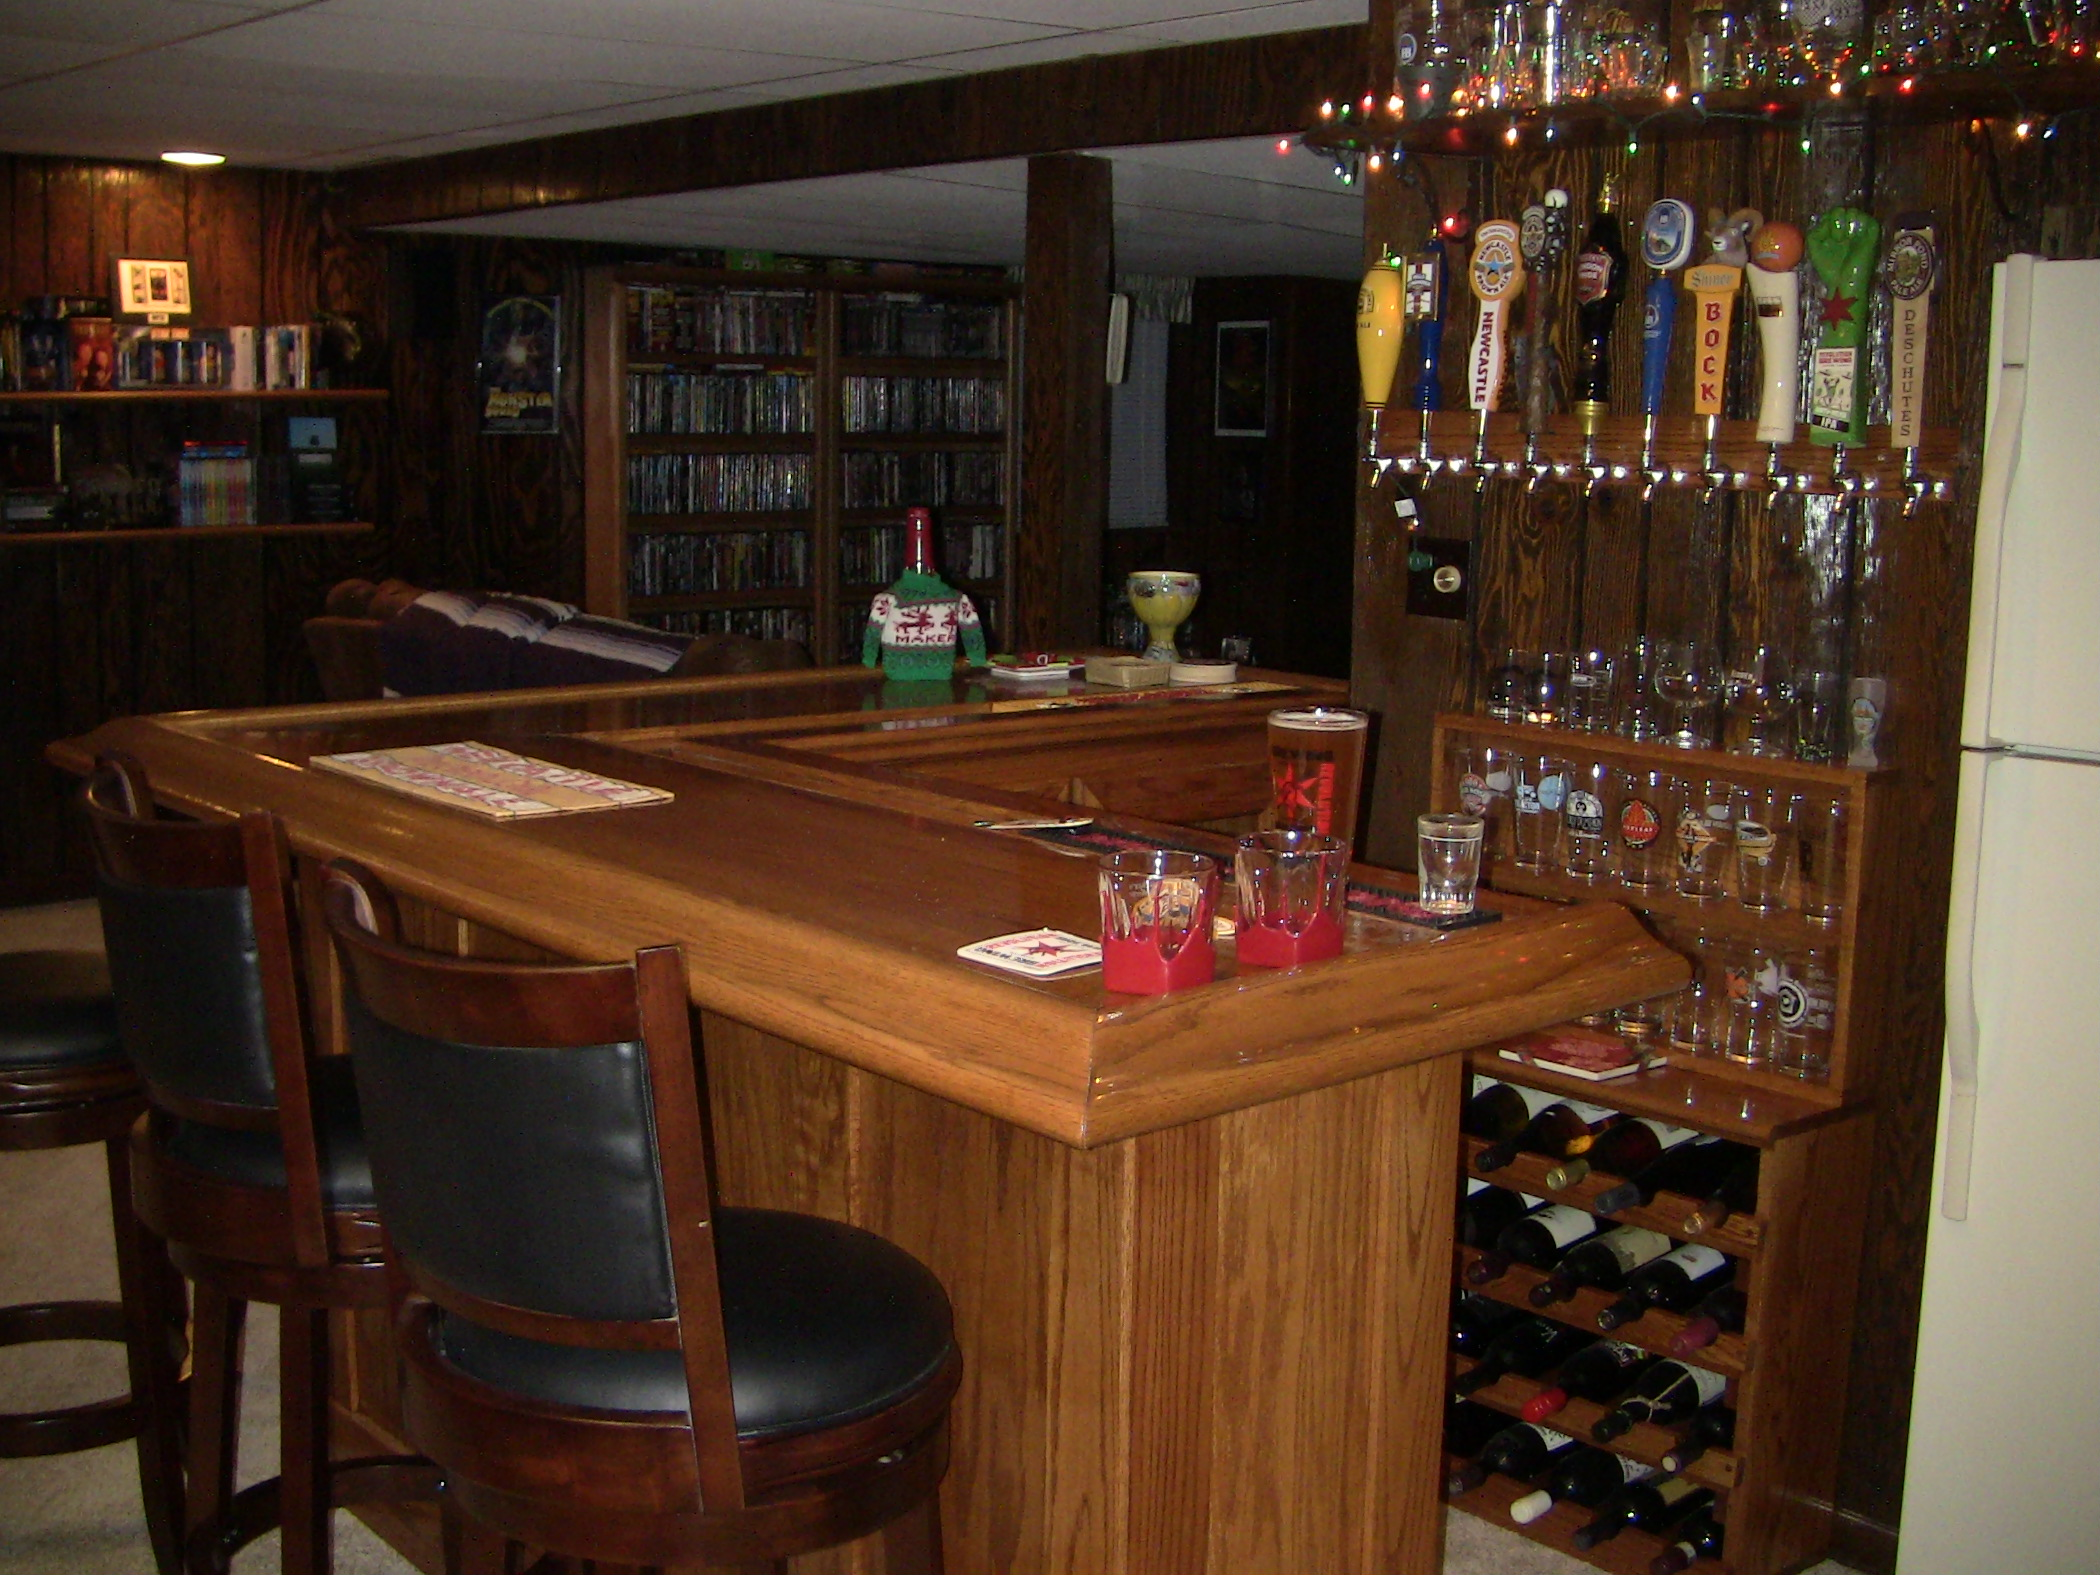 John everson dark arts blog archive diy how to build your own oak home bar - Inside bar designs ...